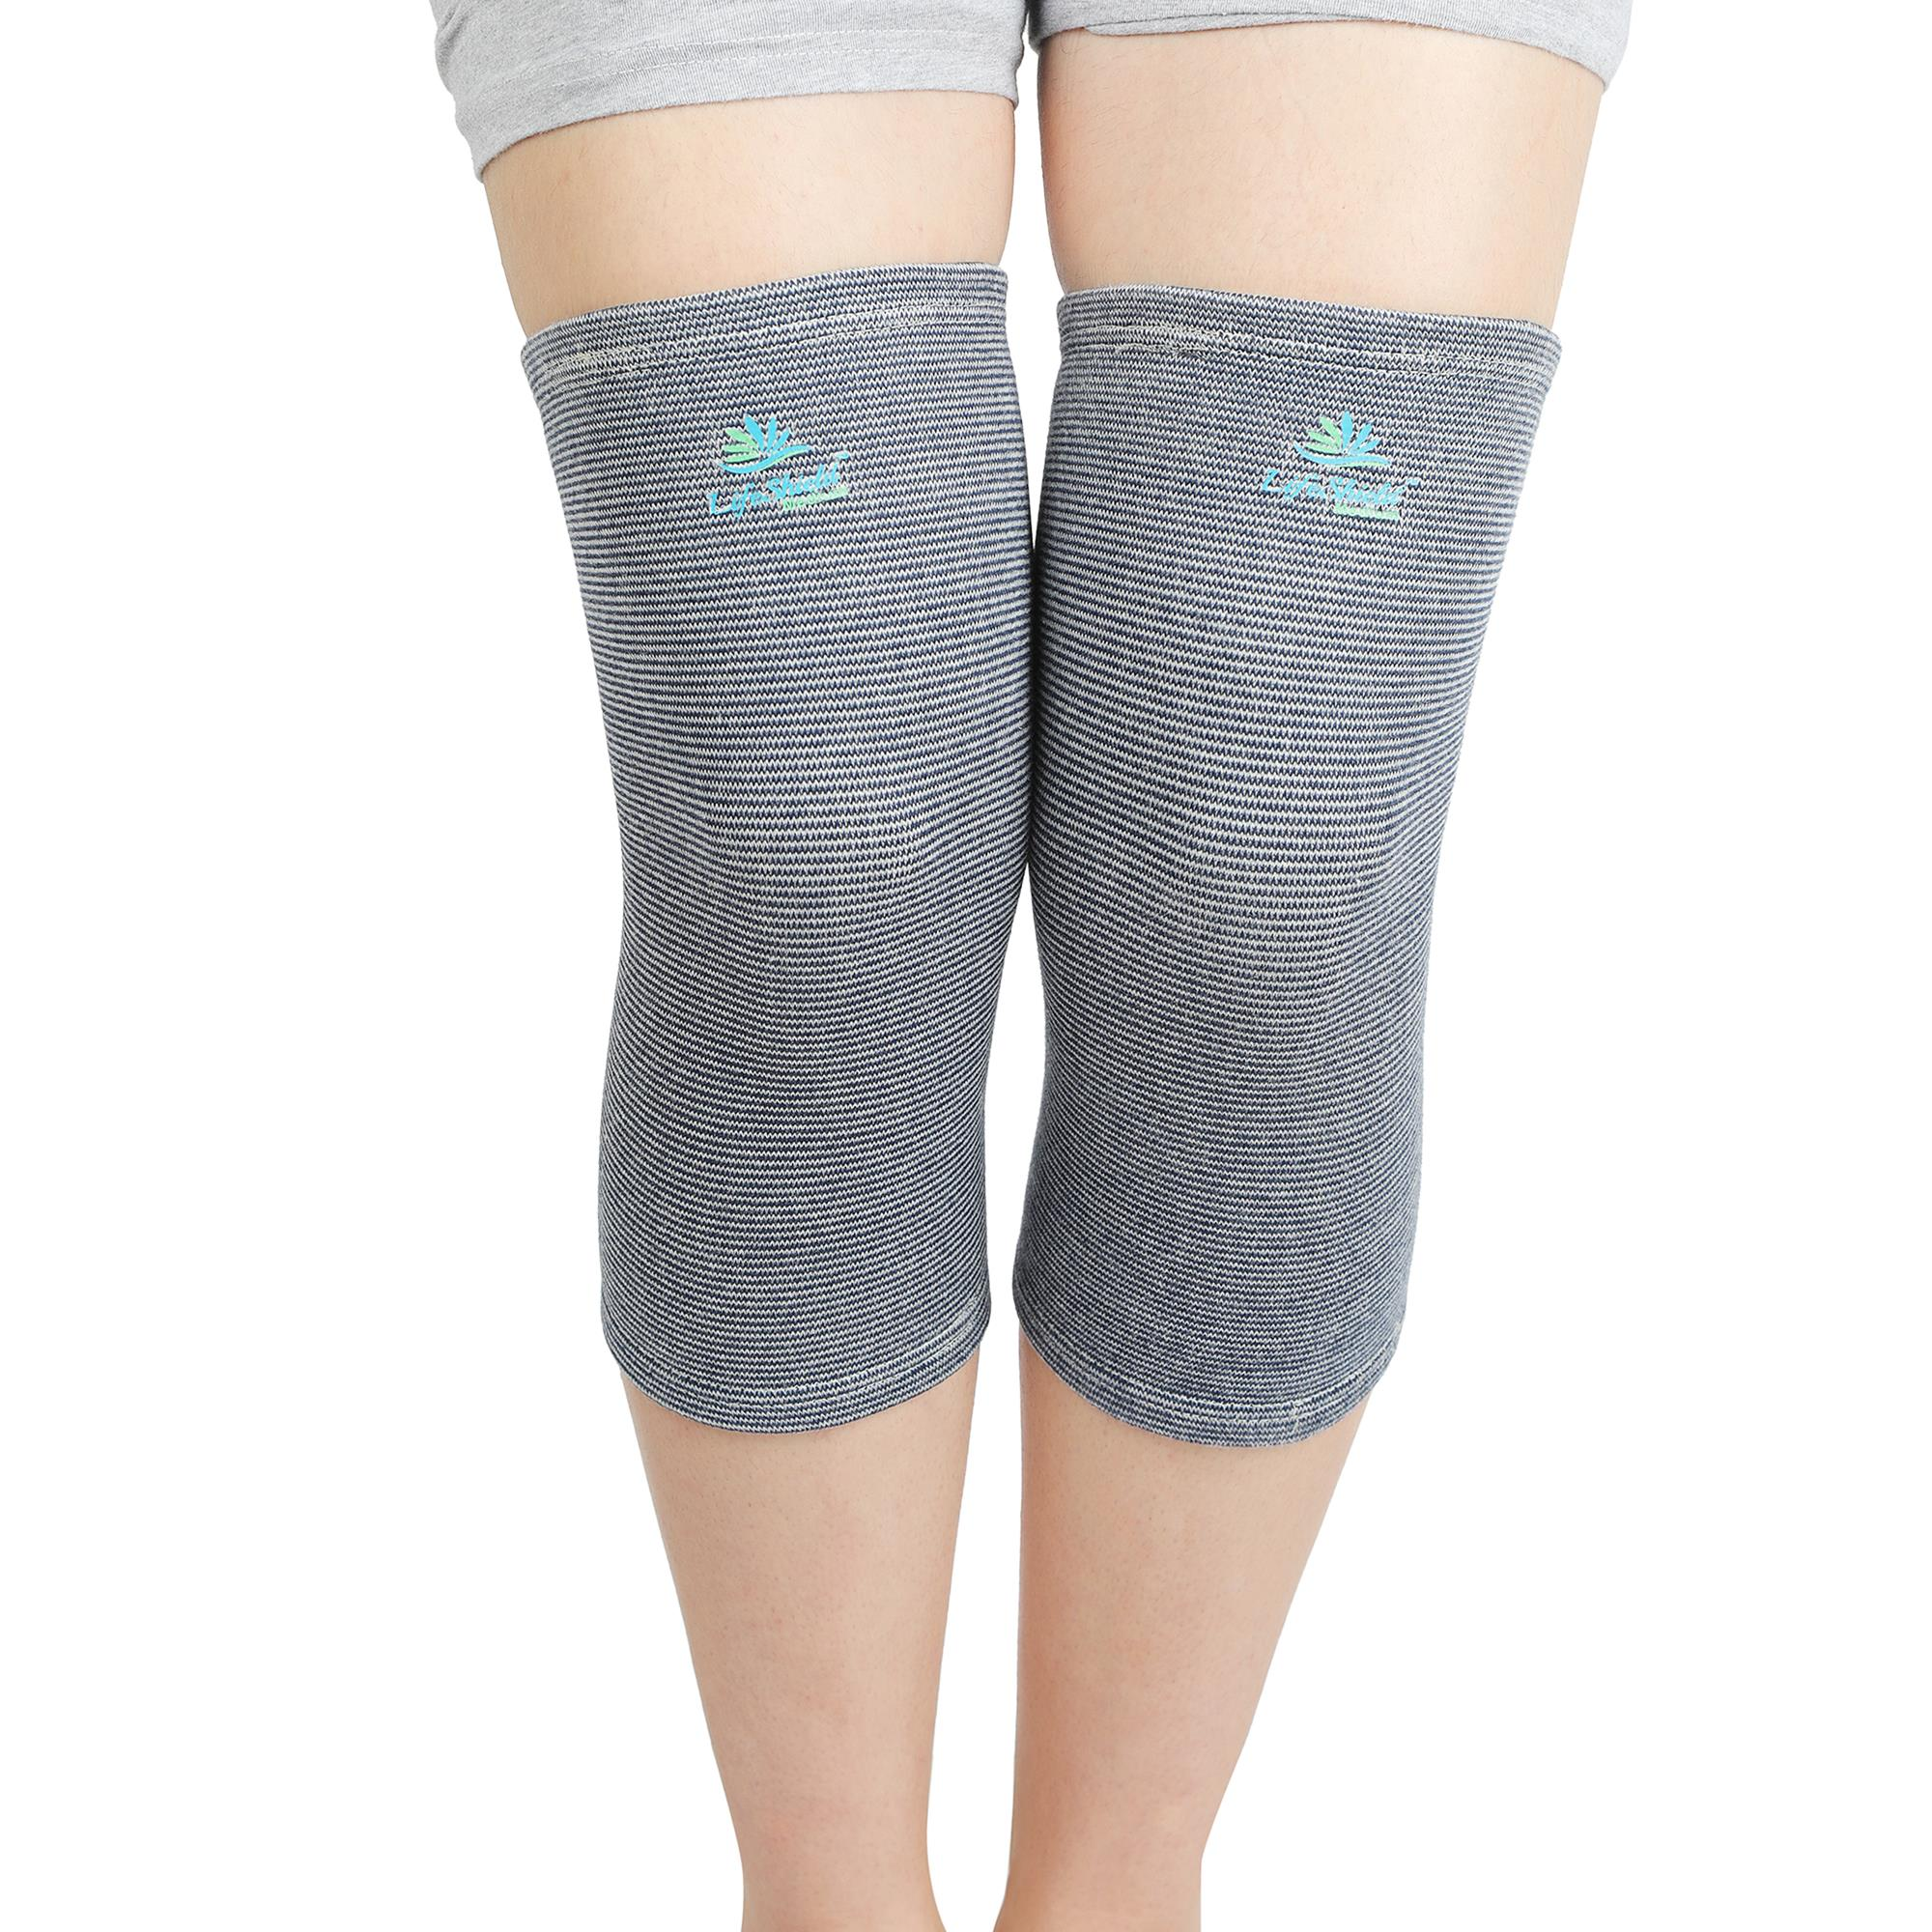 Lifeshield Knee Cap - 4 Way Cotton (Pair): Helps In Knee Joint Pain, Relief By Compressing Muscles And Veins (XX Large)